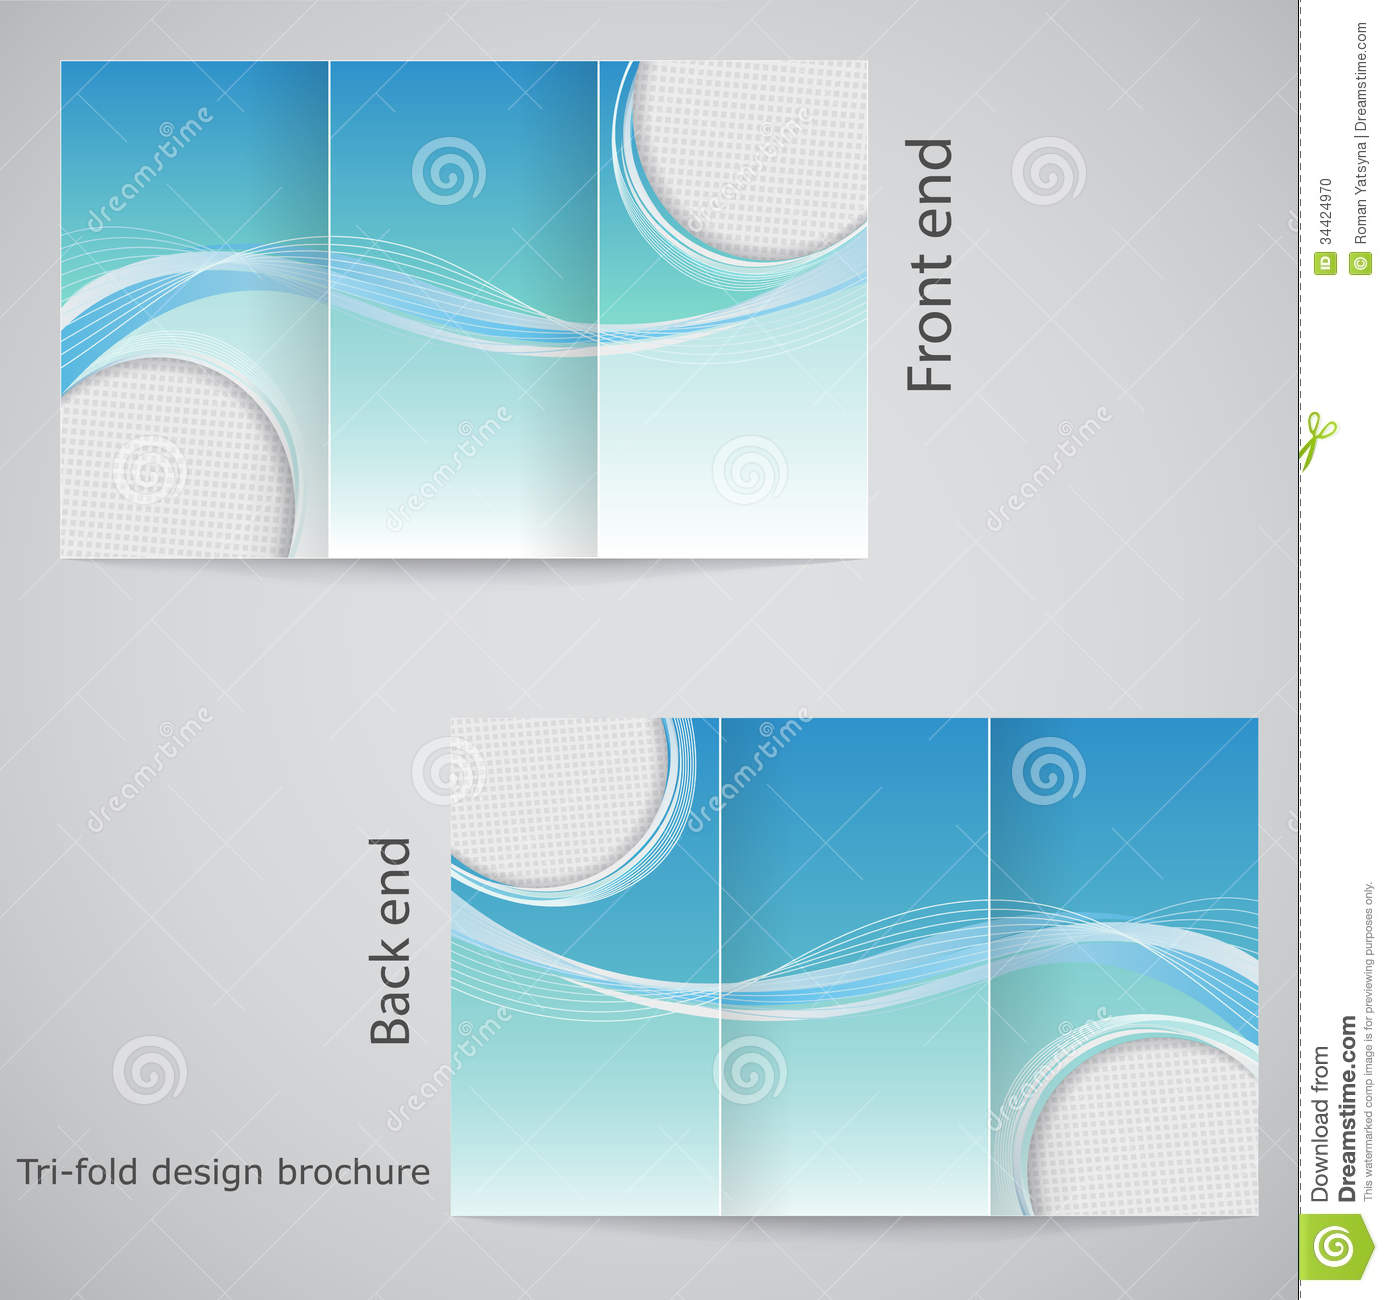 Trifold Brochure Design Stock Vector Illustration Of Handbill - Tri fold brochure design templates